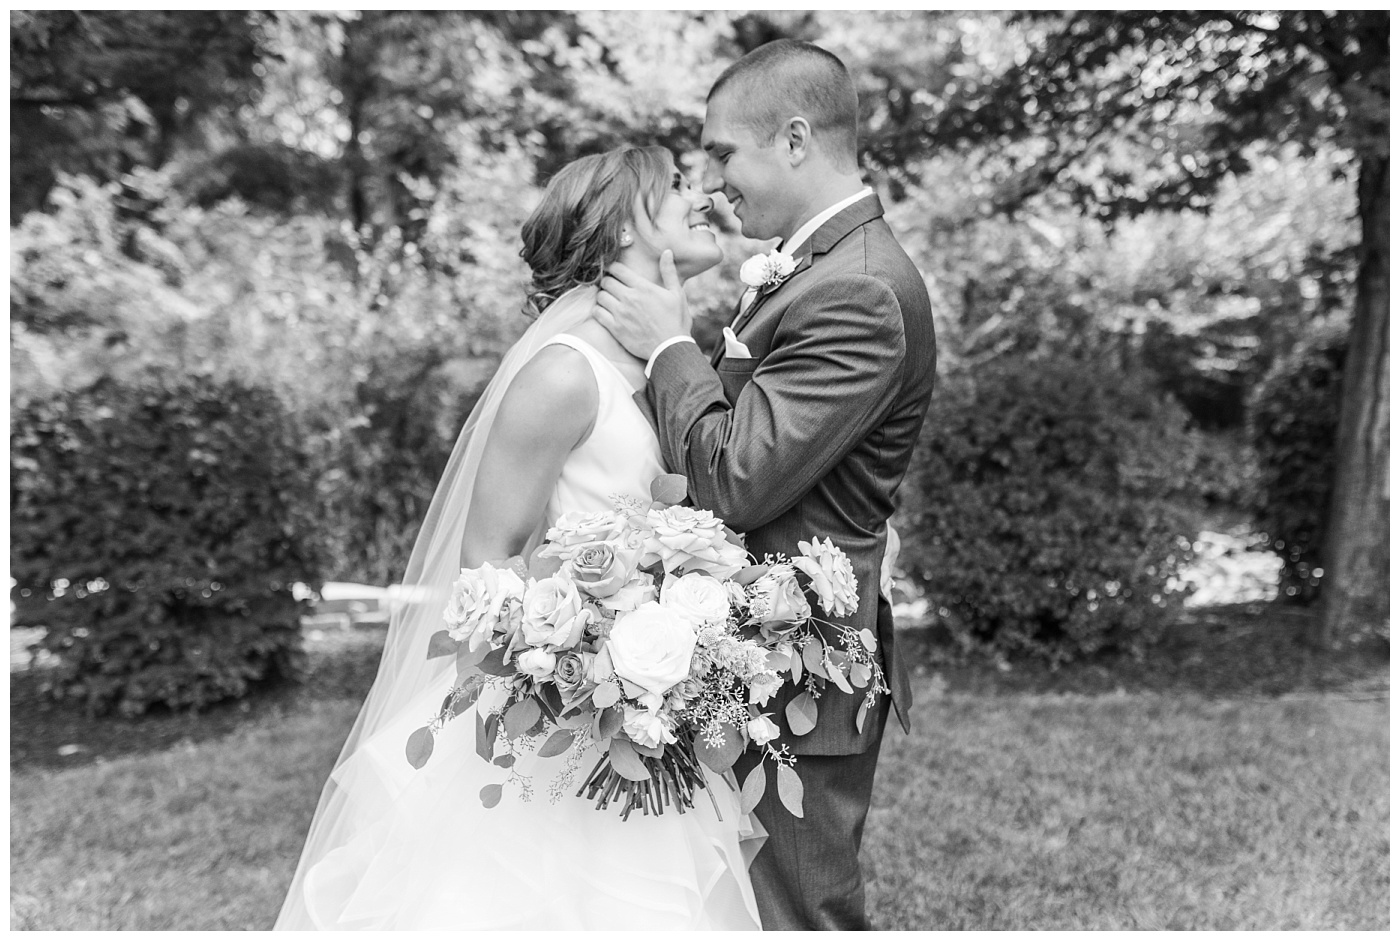 Stephanie Marie Photography Newman Catholic Center Ceremony Bella Sala Reception Tiffin Iowa City Wedding Photographer Chelsey Justin Meyers_0050.jpg